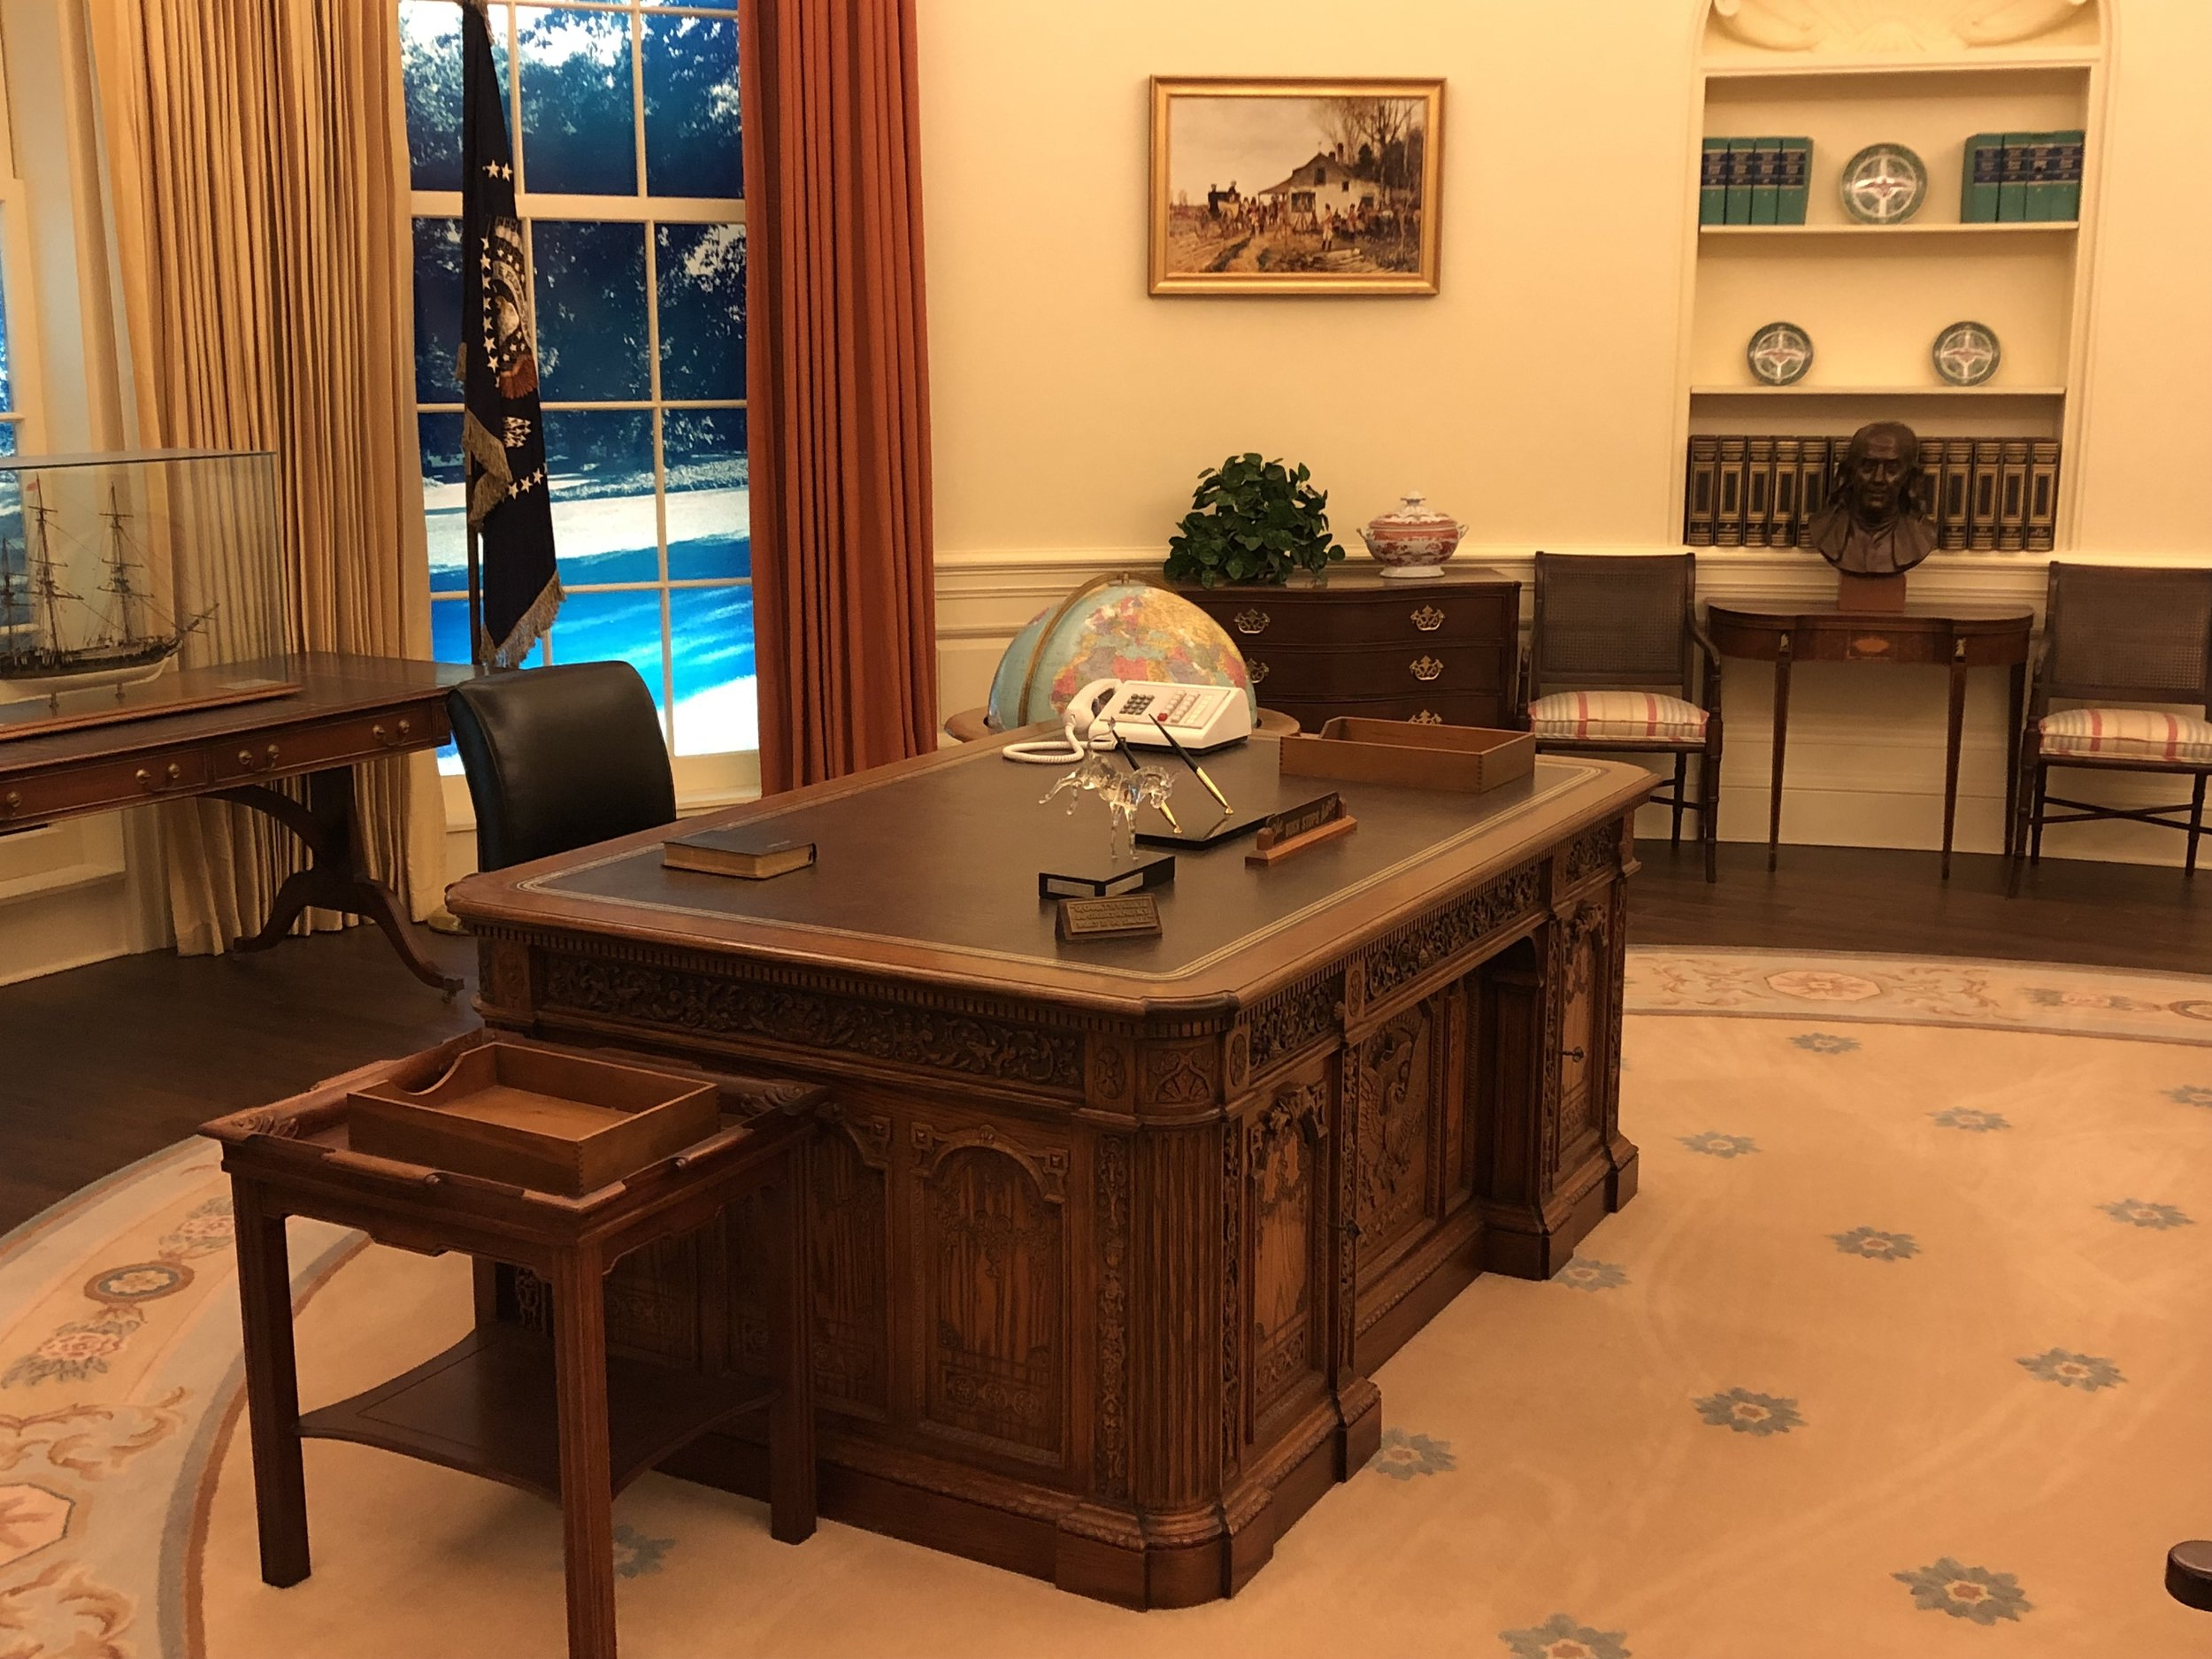 They have one of the more faithful reproductions of the Oval Office I've run across.